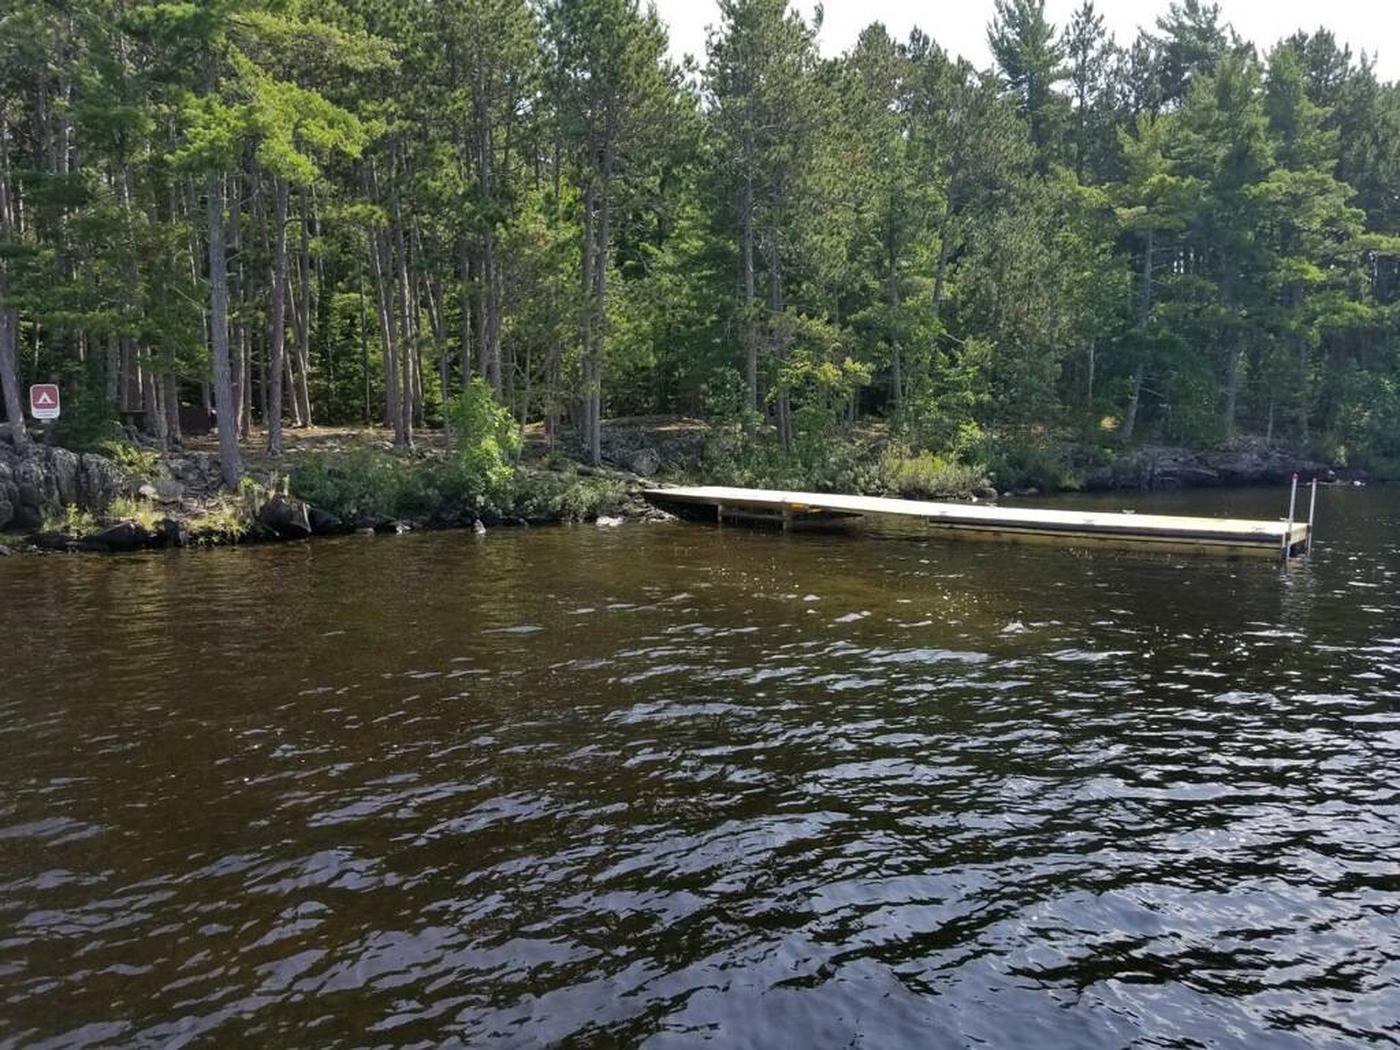 R19 - Logging CampView of campsite from the water